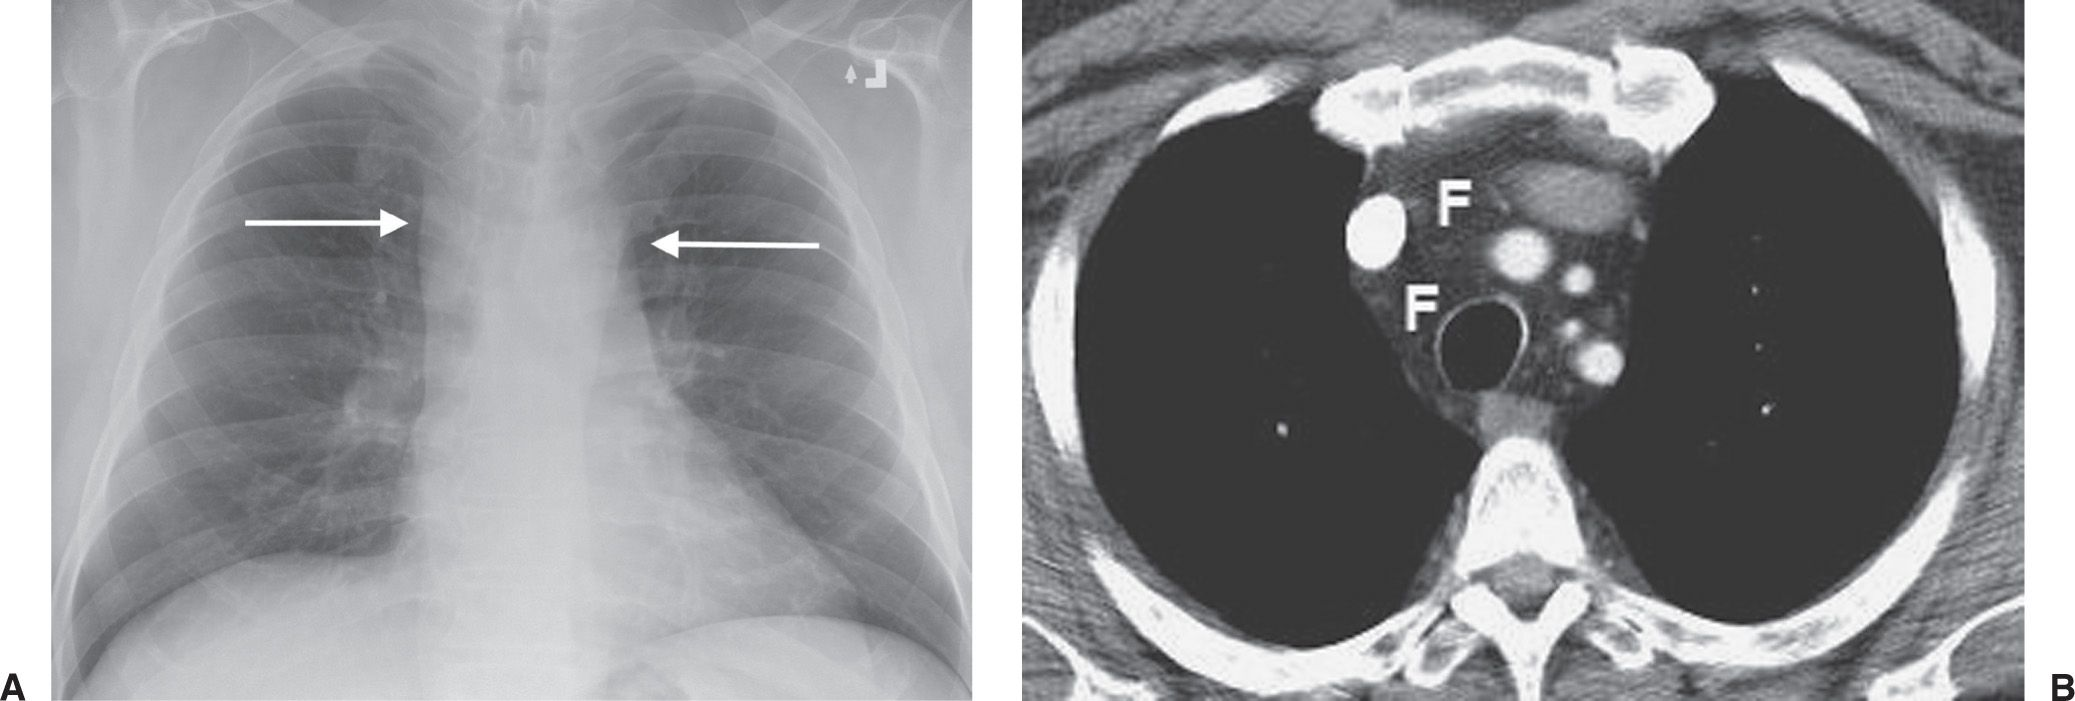 Mediastinal Masses | Radiology Key